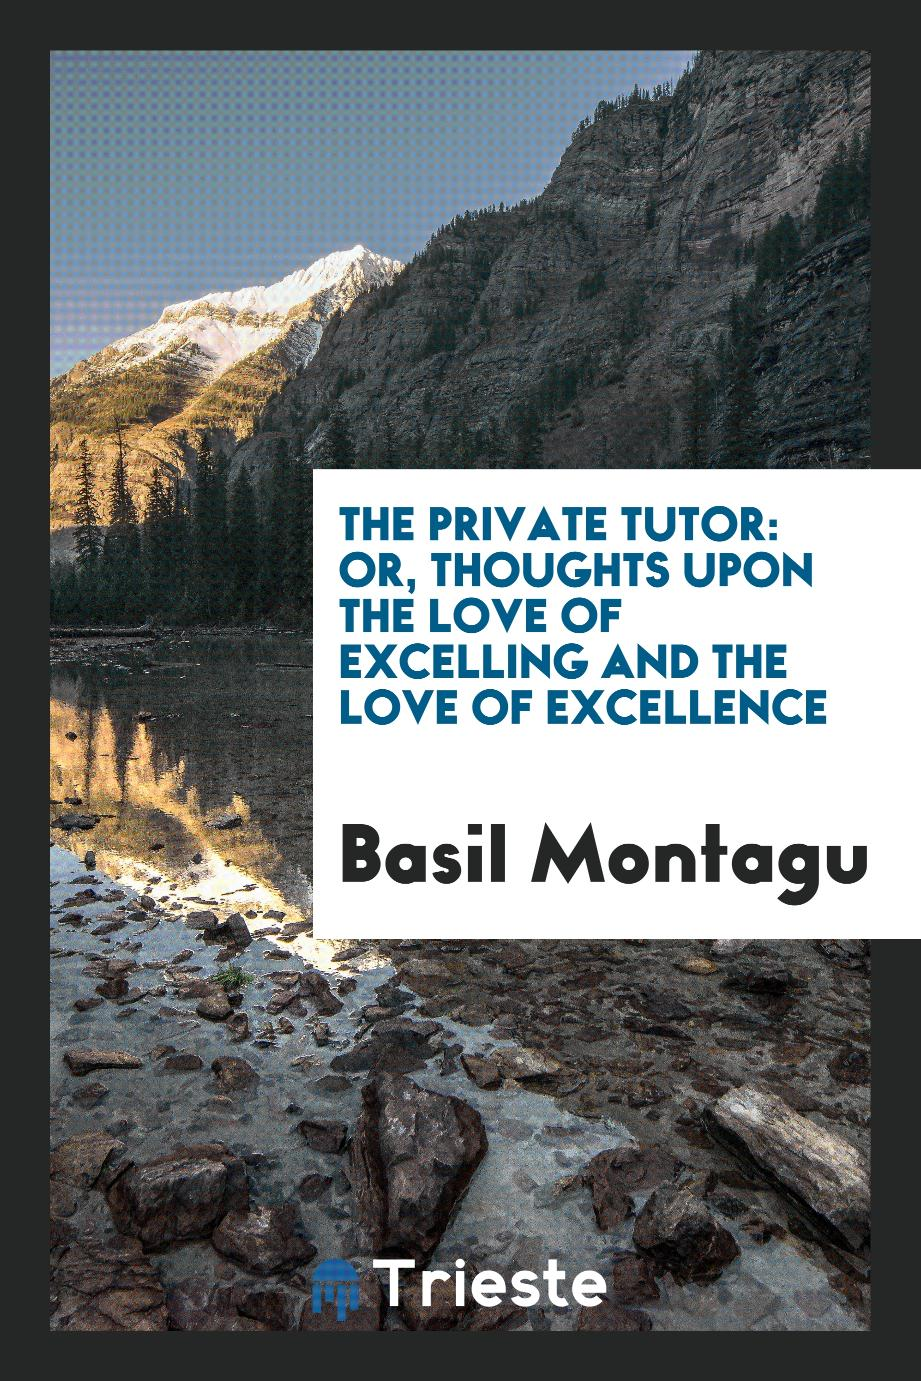 The Private Tutor: Or, Thoughts Upon the Love of Excelling and the Love of Excellence